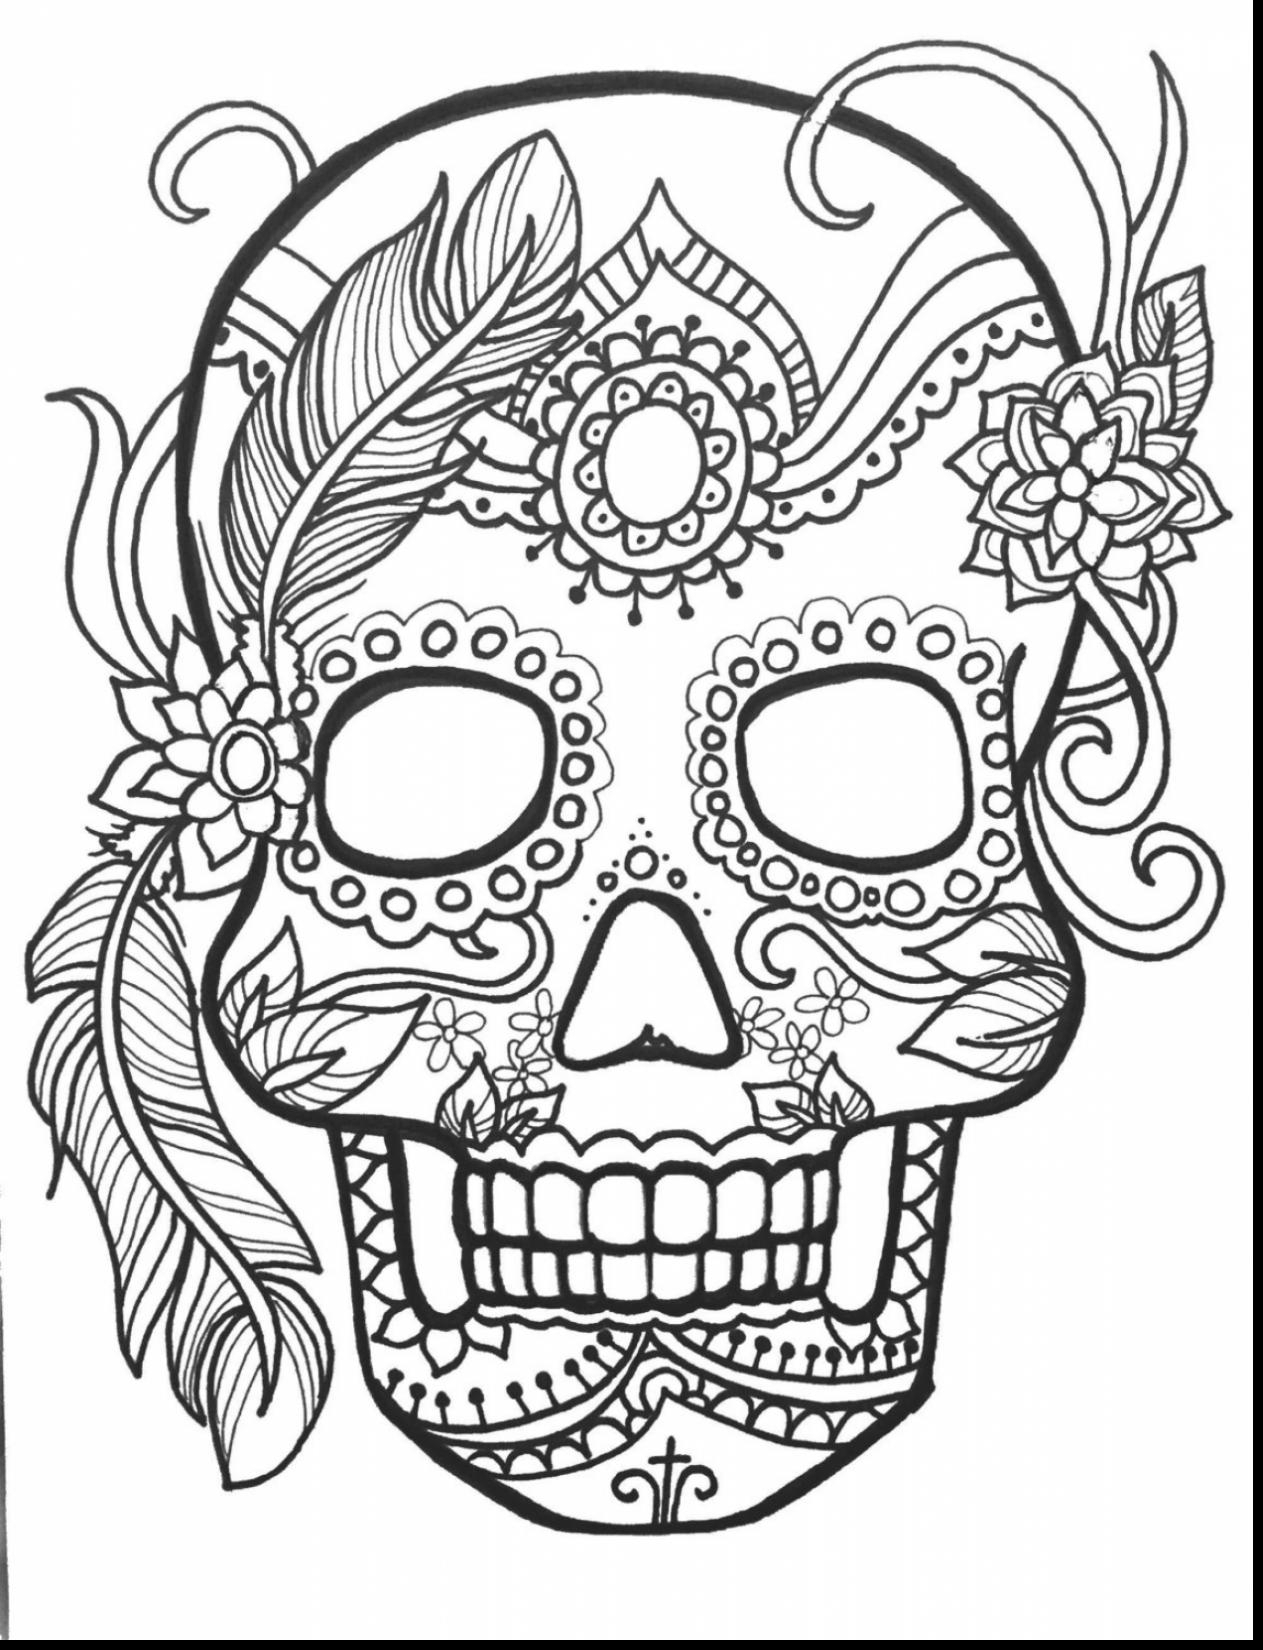 It is a photo of Day of the Dead Printable Masks inside masquerade mask